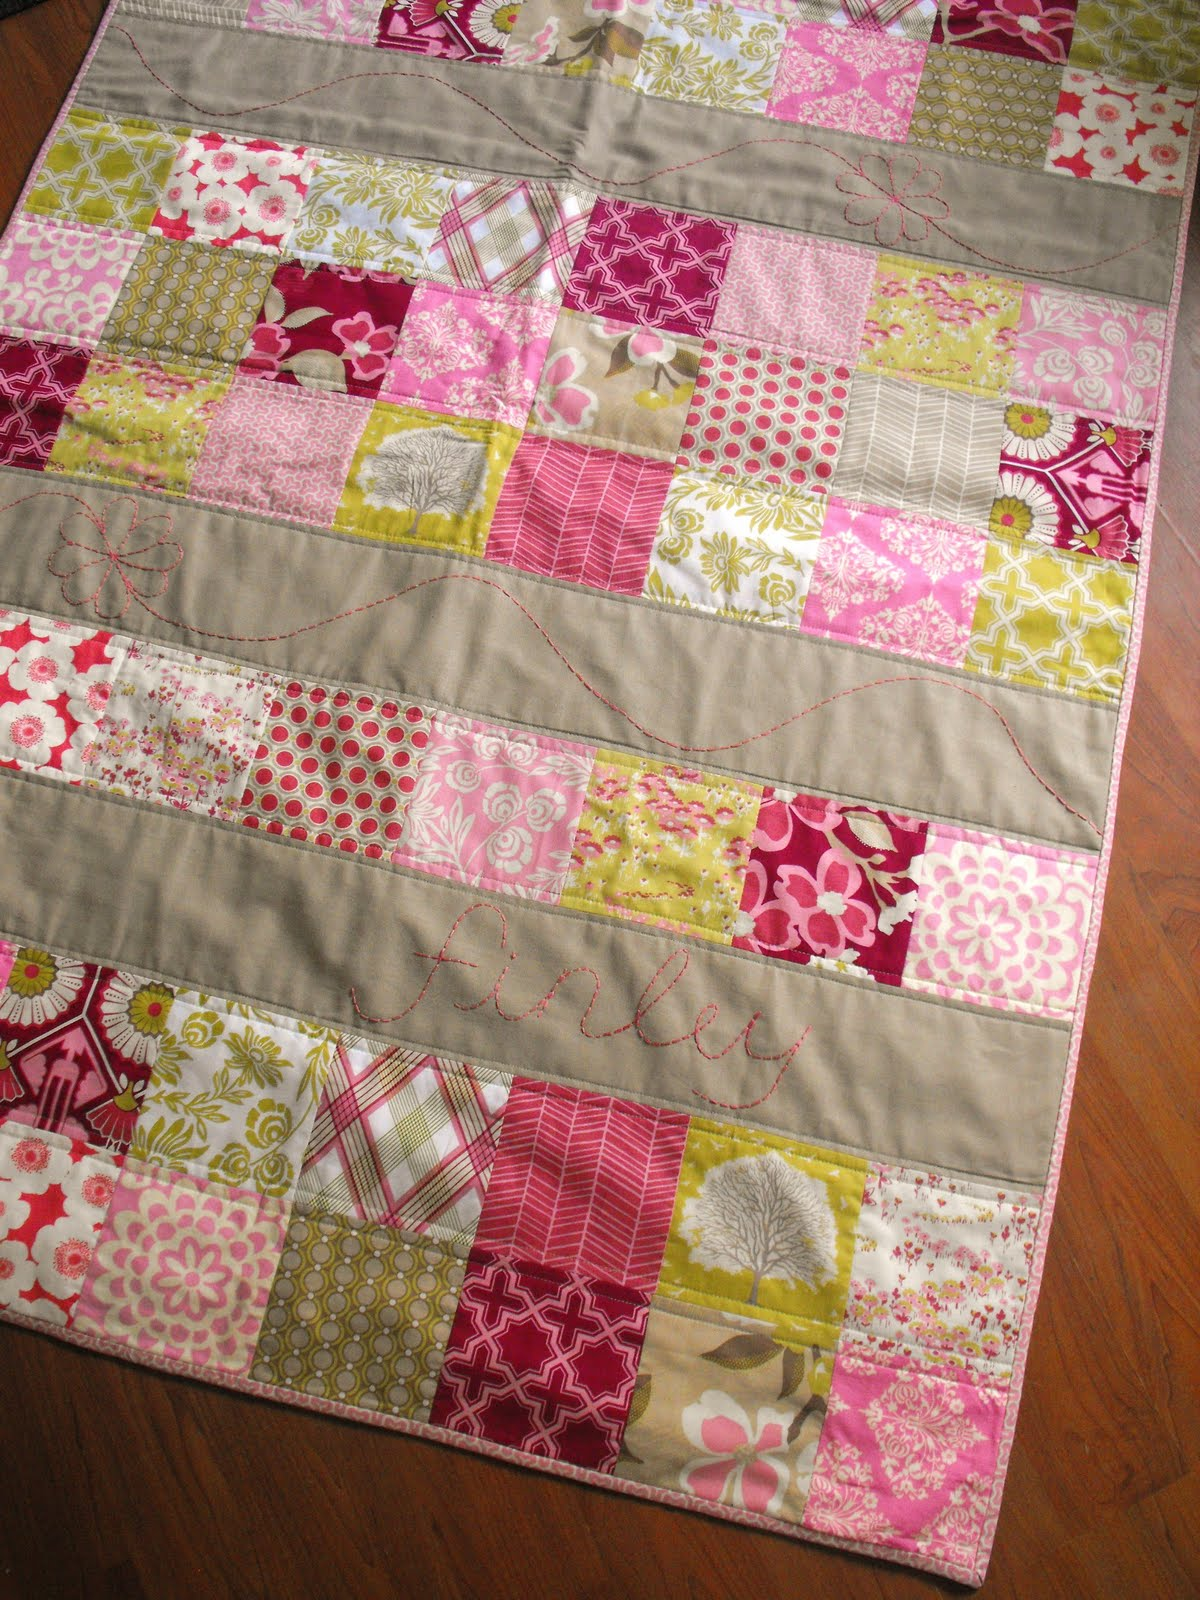 Fussy Cut Finally A Baby Girl Quilt